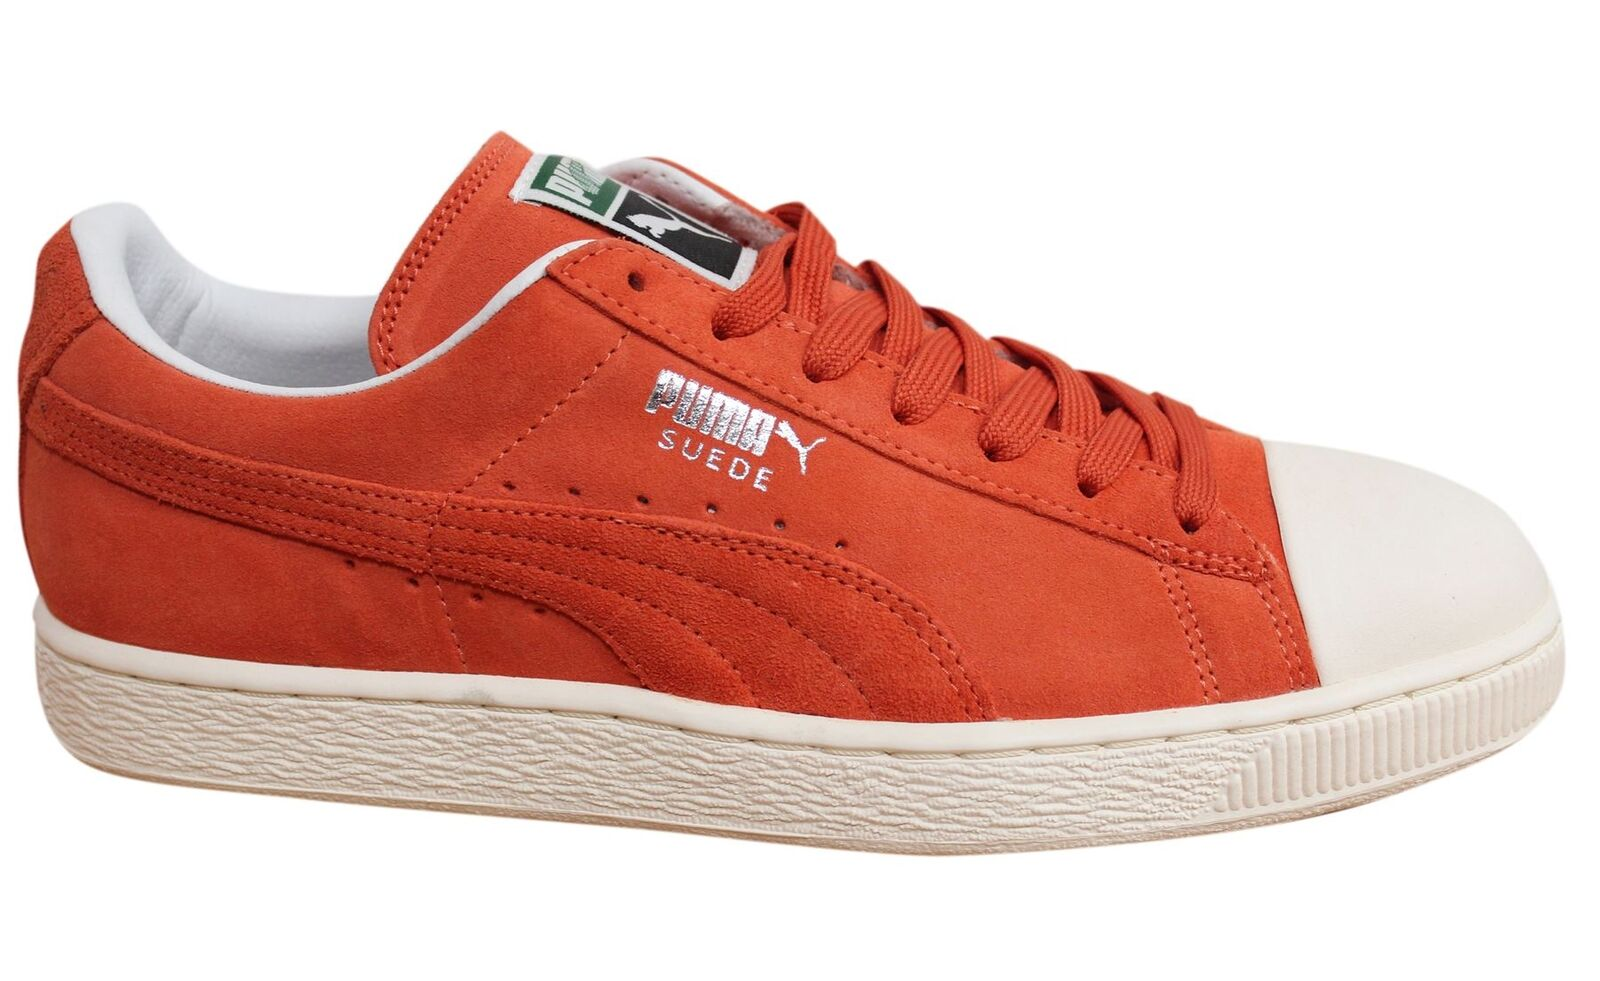 Puma Suede Rubber Lace Up Orange Leather homme Trainers 357719 06 D21